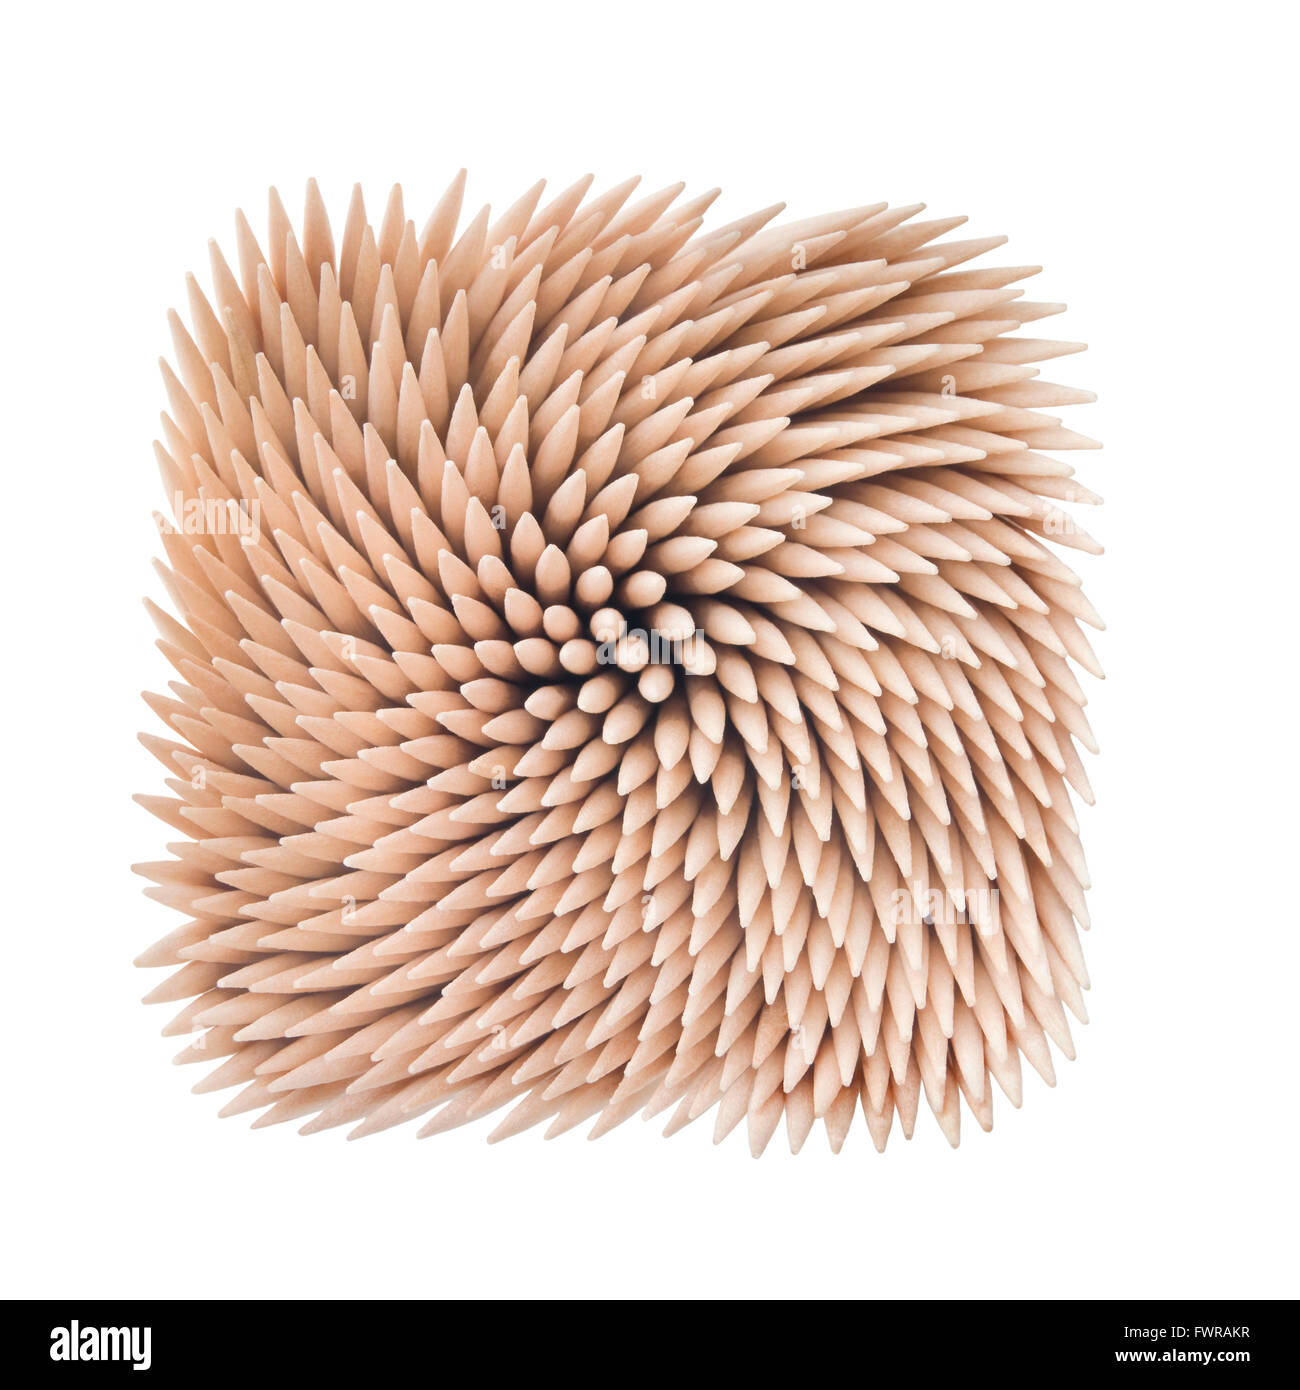 Toothpicks pattern set on white background. Clipping path - Stock Image